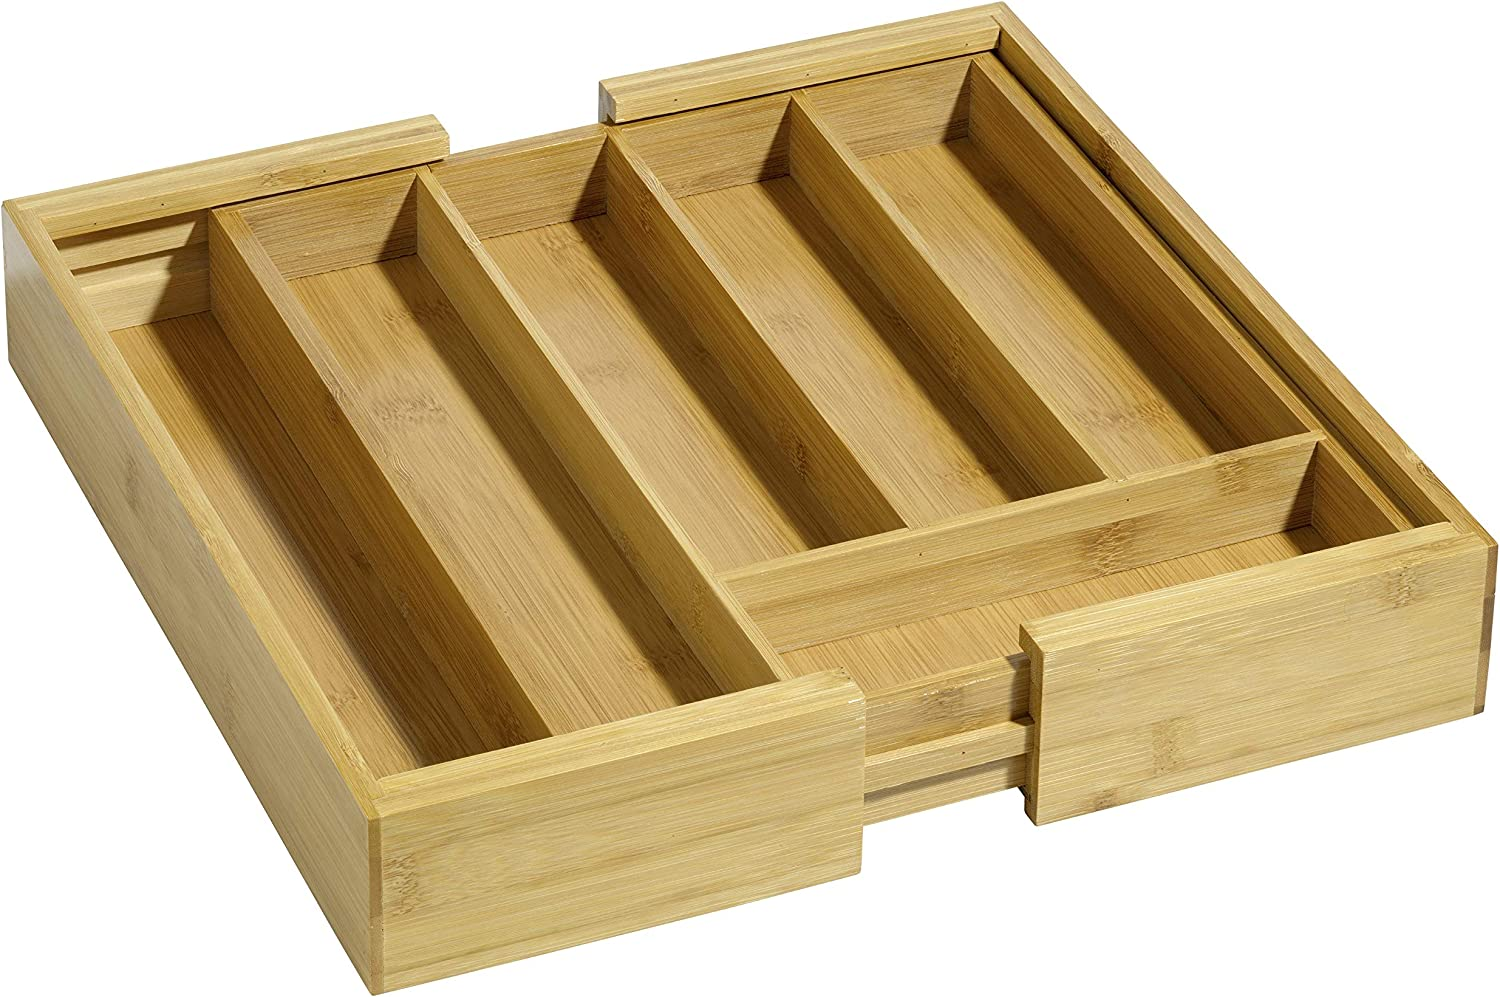 Esmeyer 457317 Adjustable Cutlery Tray Wood Atlanta Manufacturer direct delivery Mall